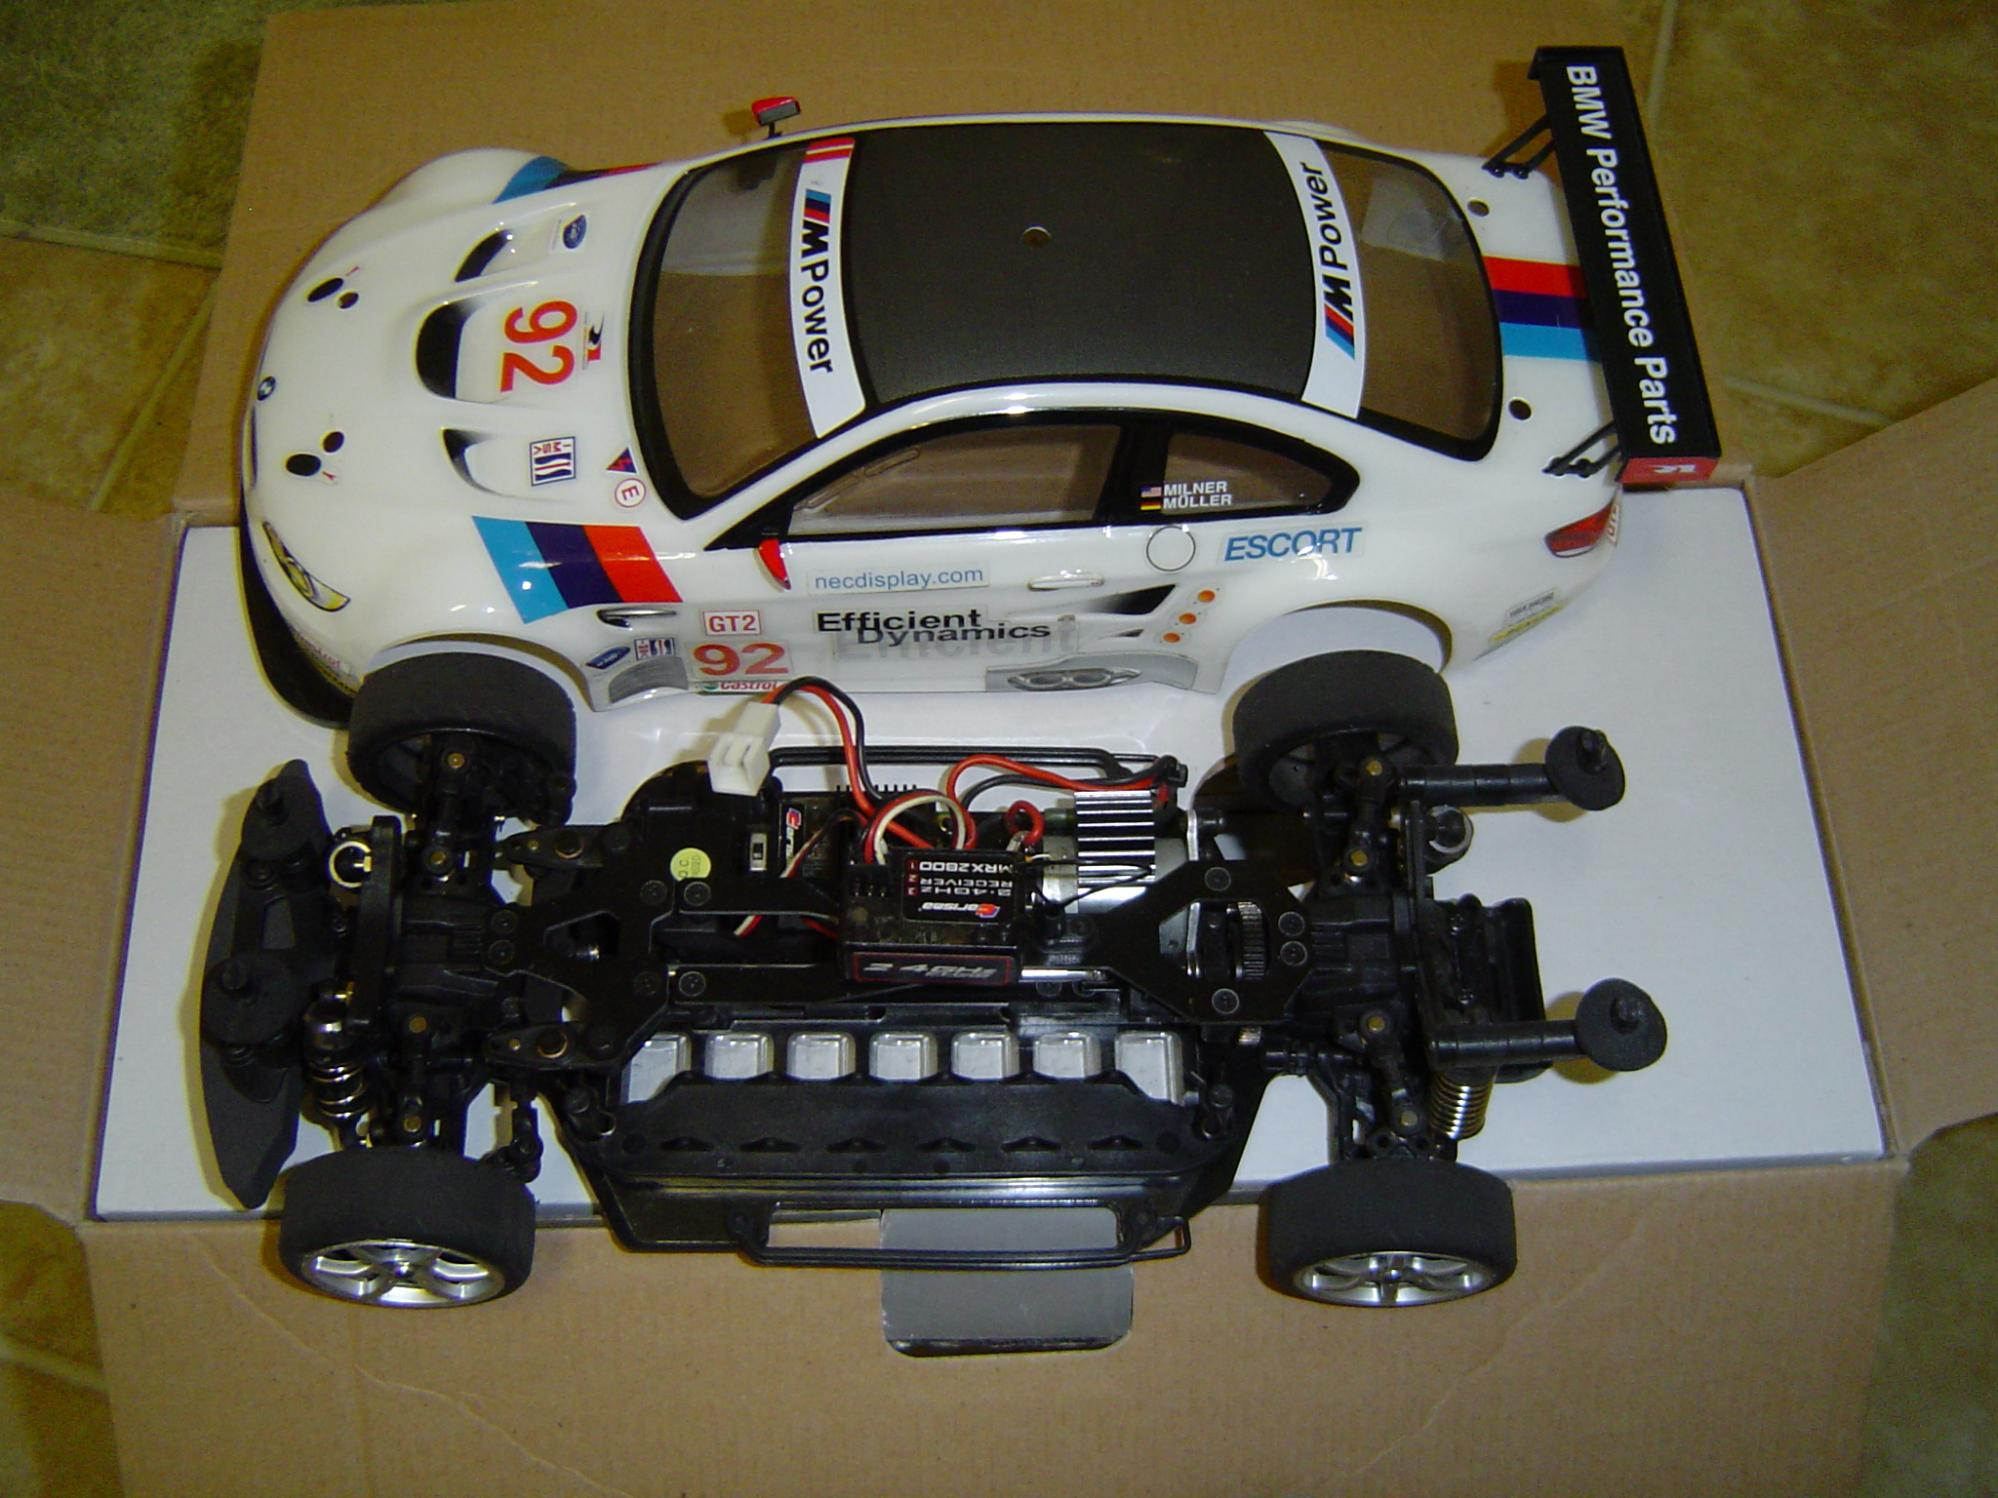 BMW Used For Sale >> Carisma GT14 BMW Rahal Racing M3 - R/C Tech Forums